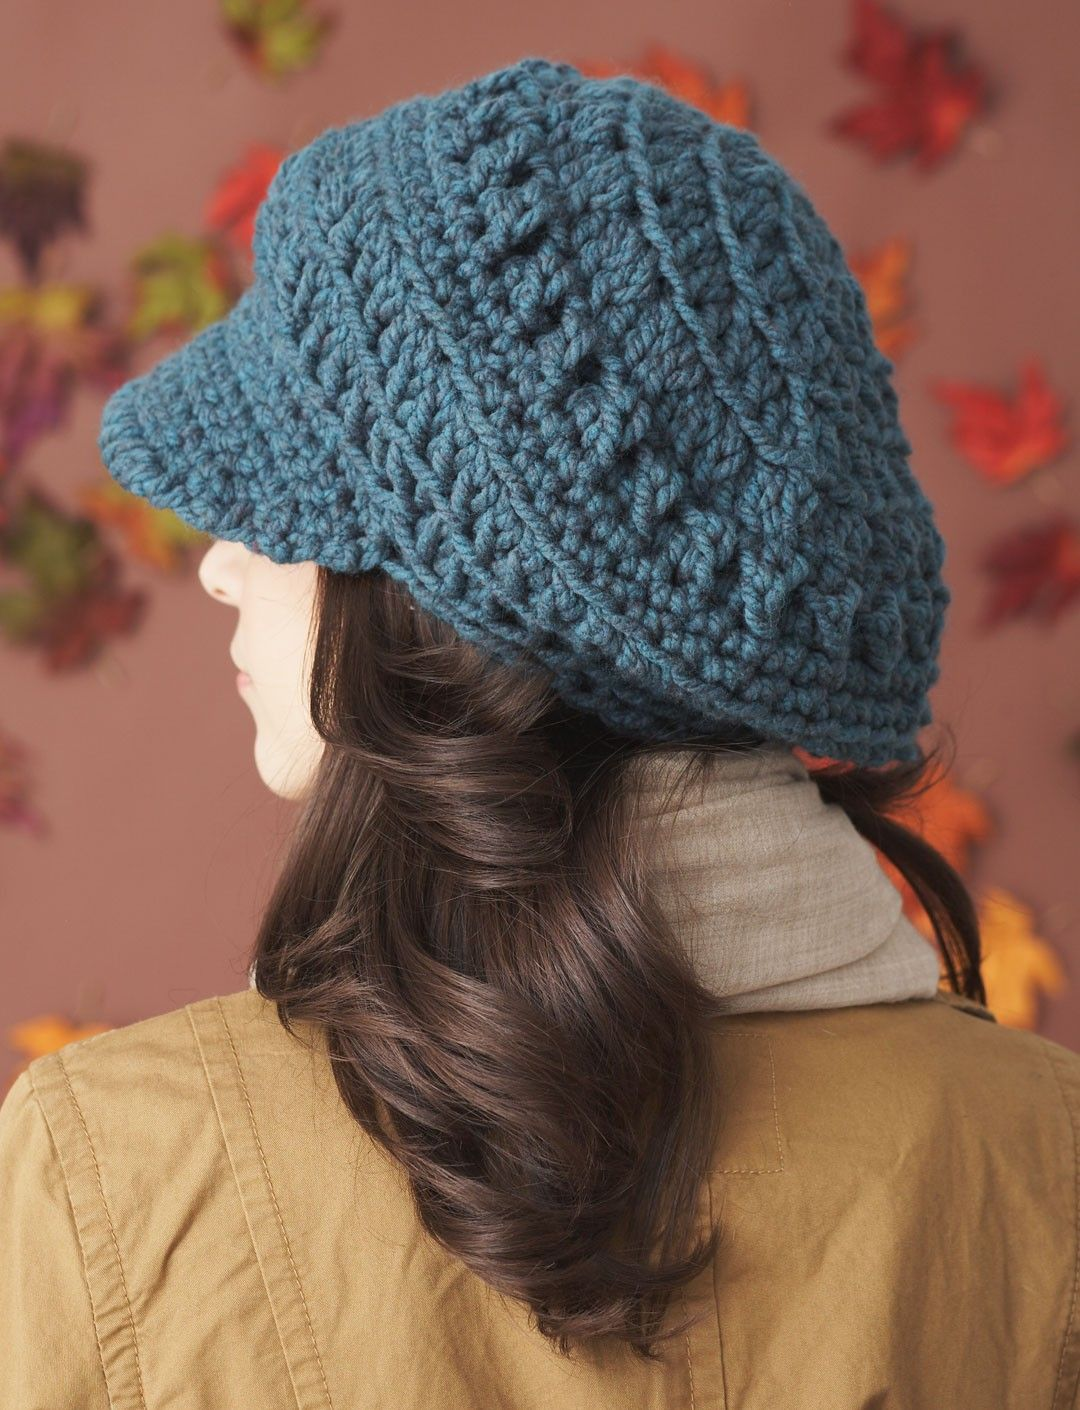 Slouchy peaked hat crochet knit pinterest free pattern warm up with our favorite crochet hat patterns craftfoxes bankloansurffo Image collections